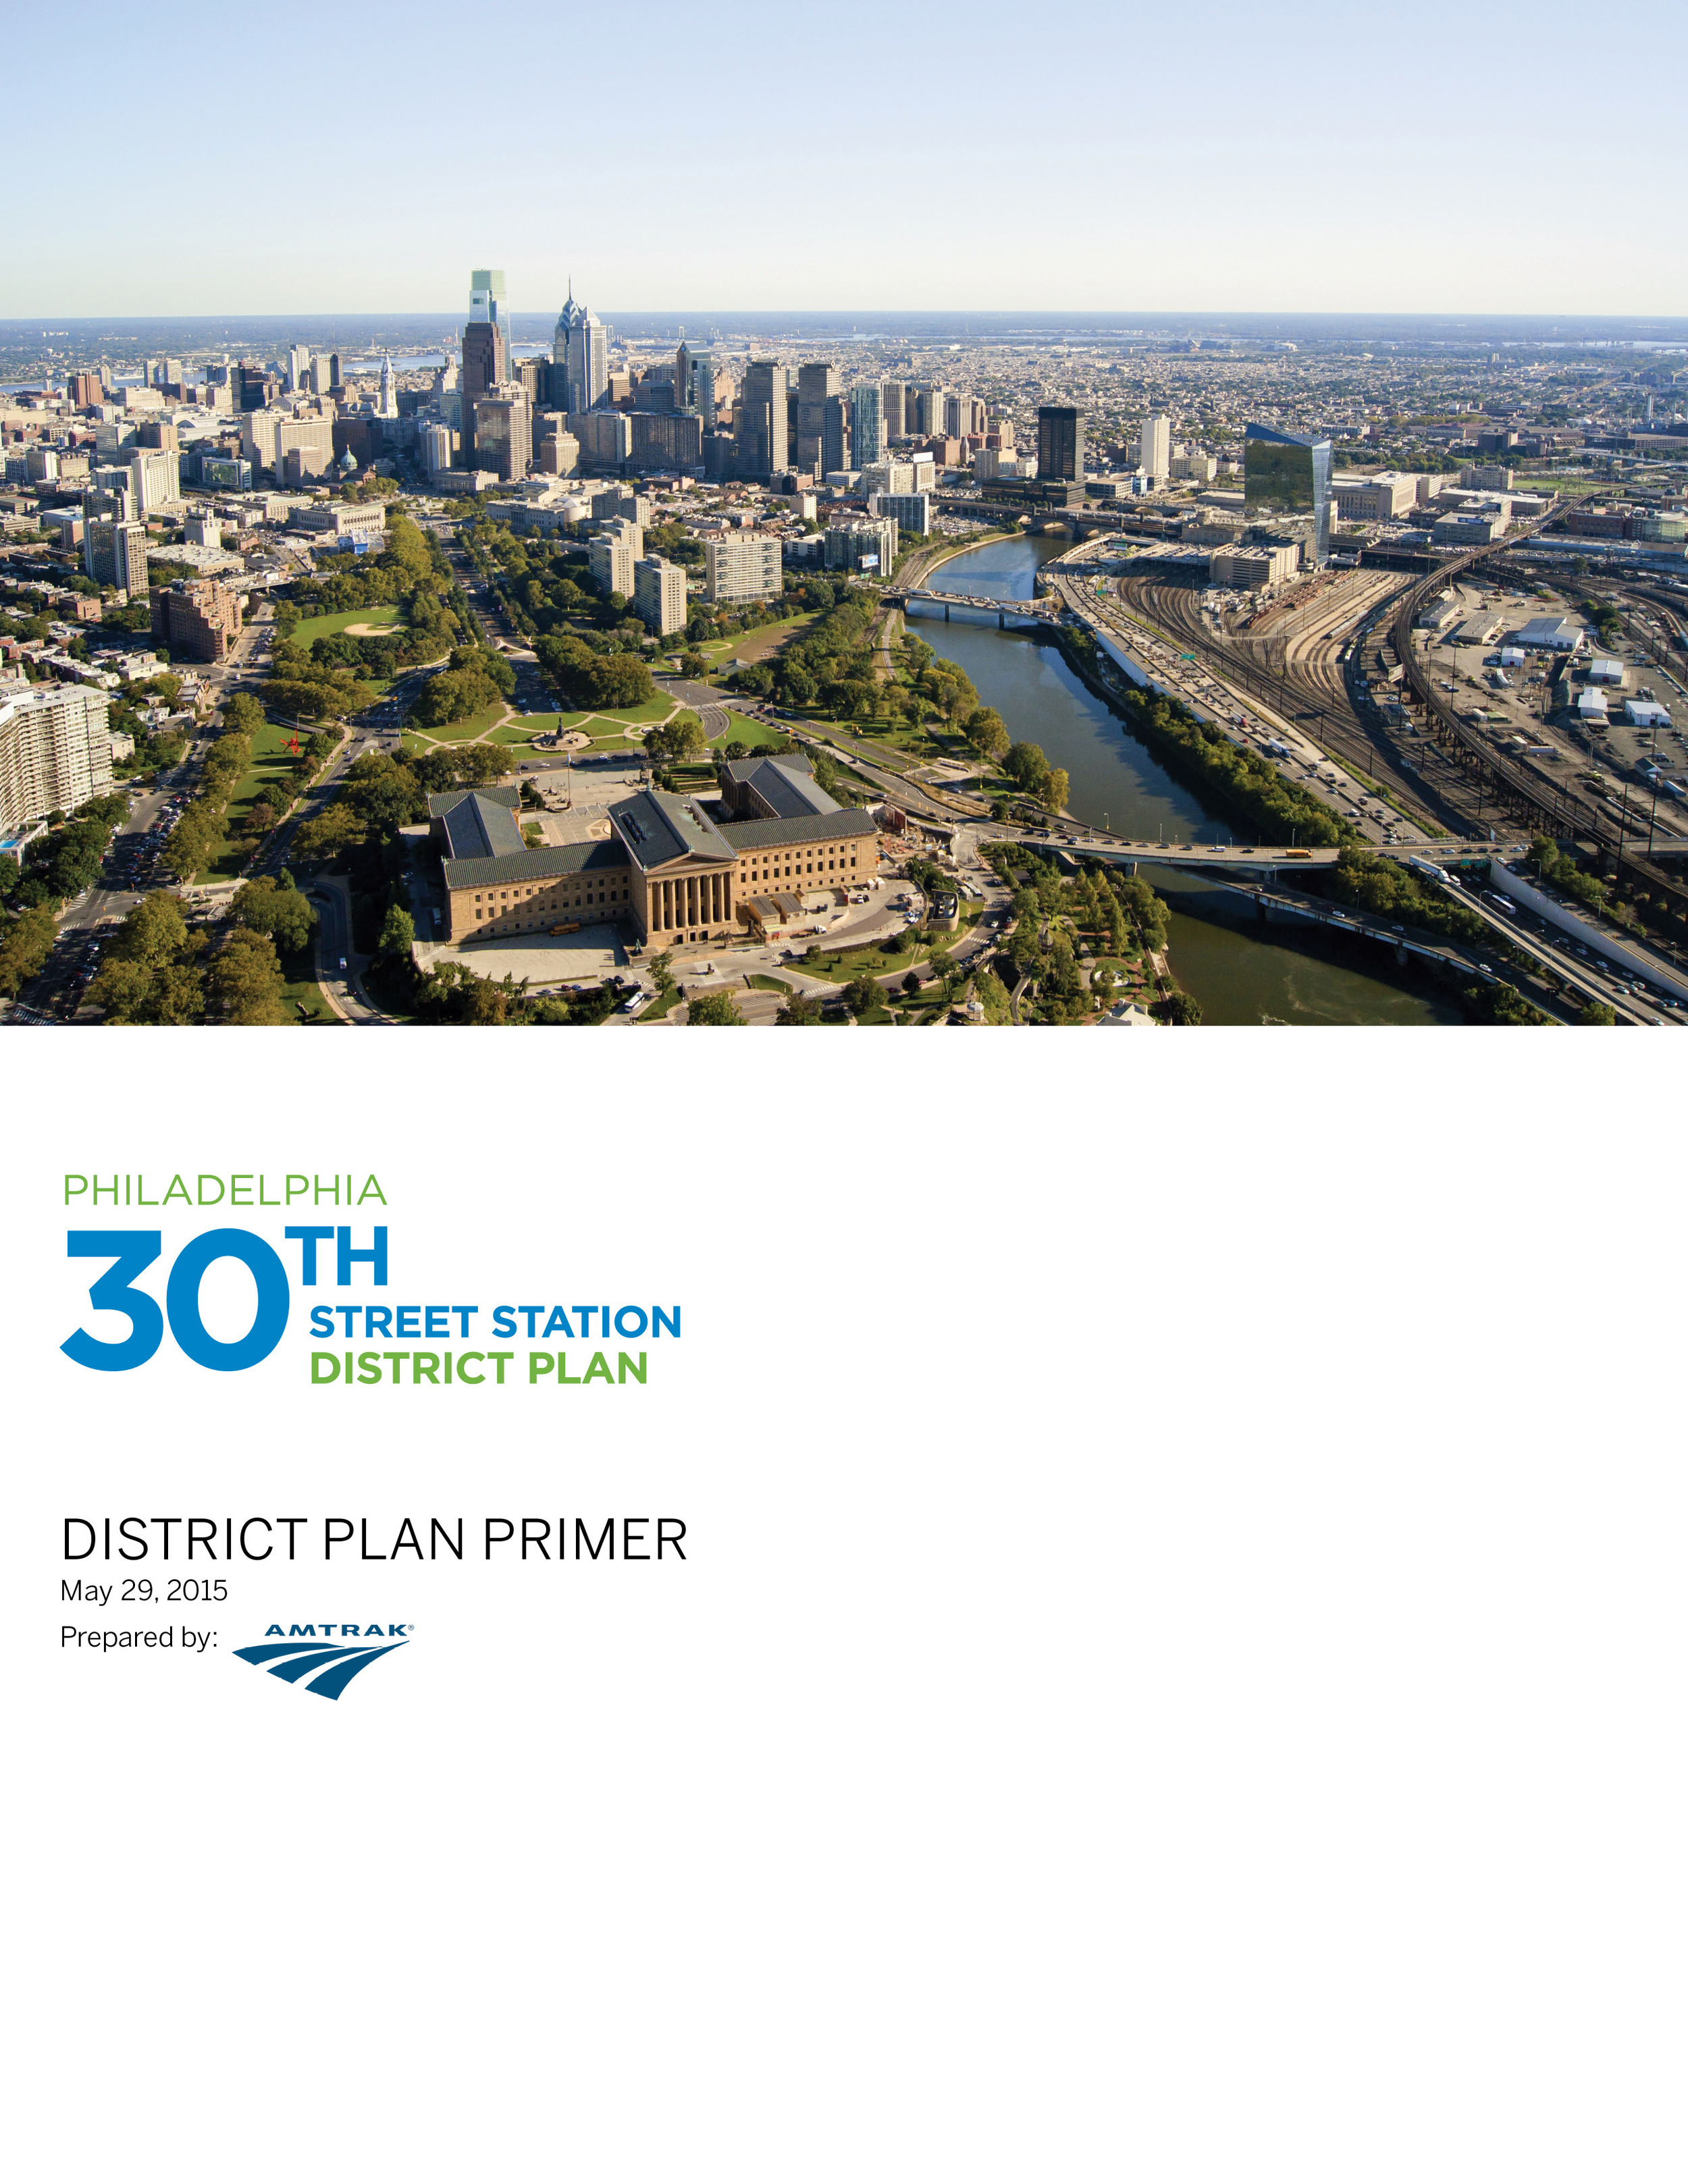 District Plan Primer  (PDF, 17 MB), May 2015